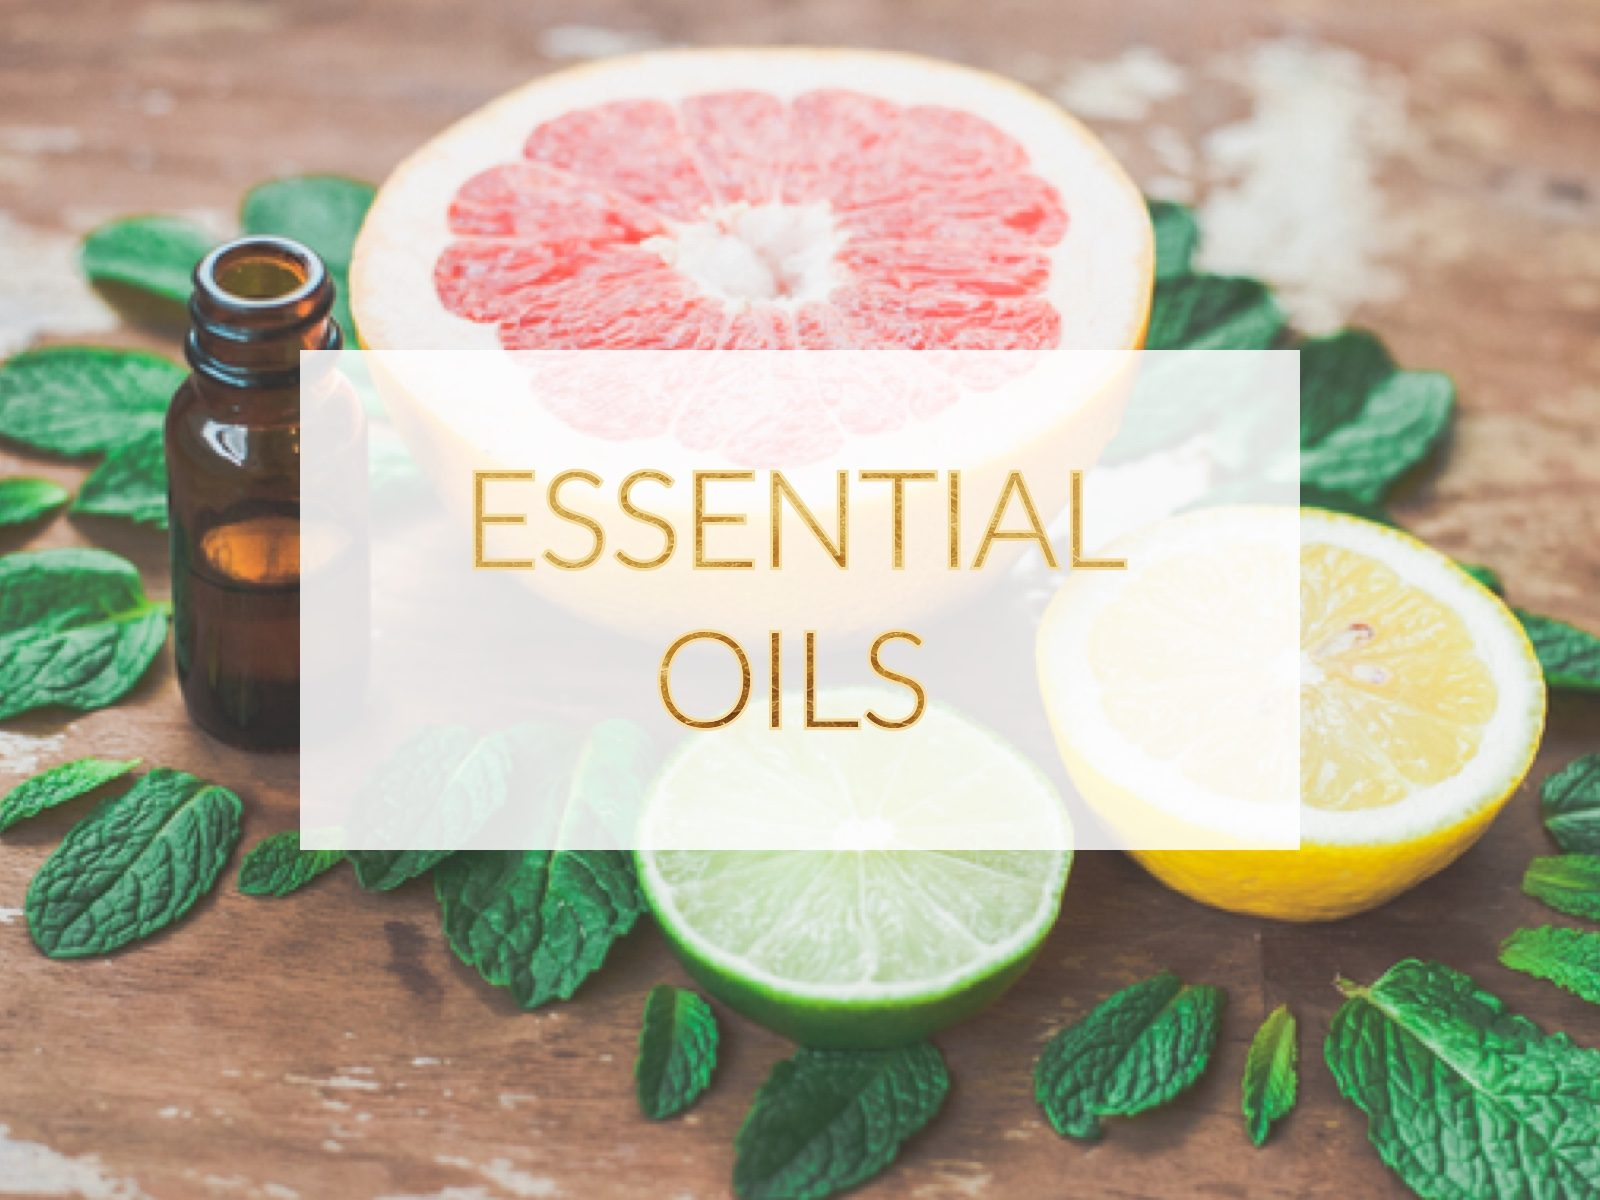 Slide 3 HR – Essential Oils